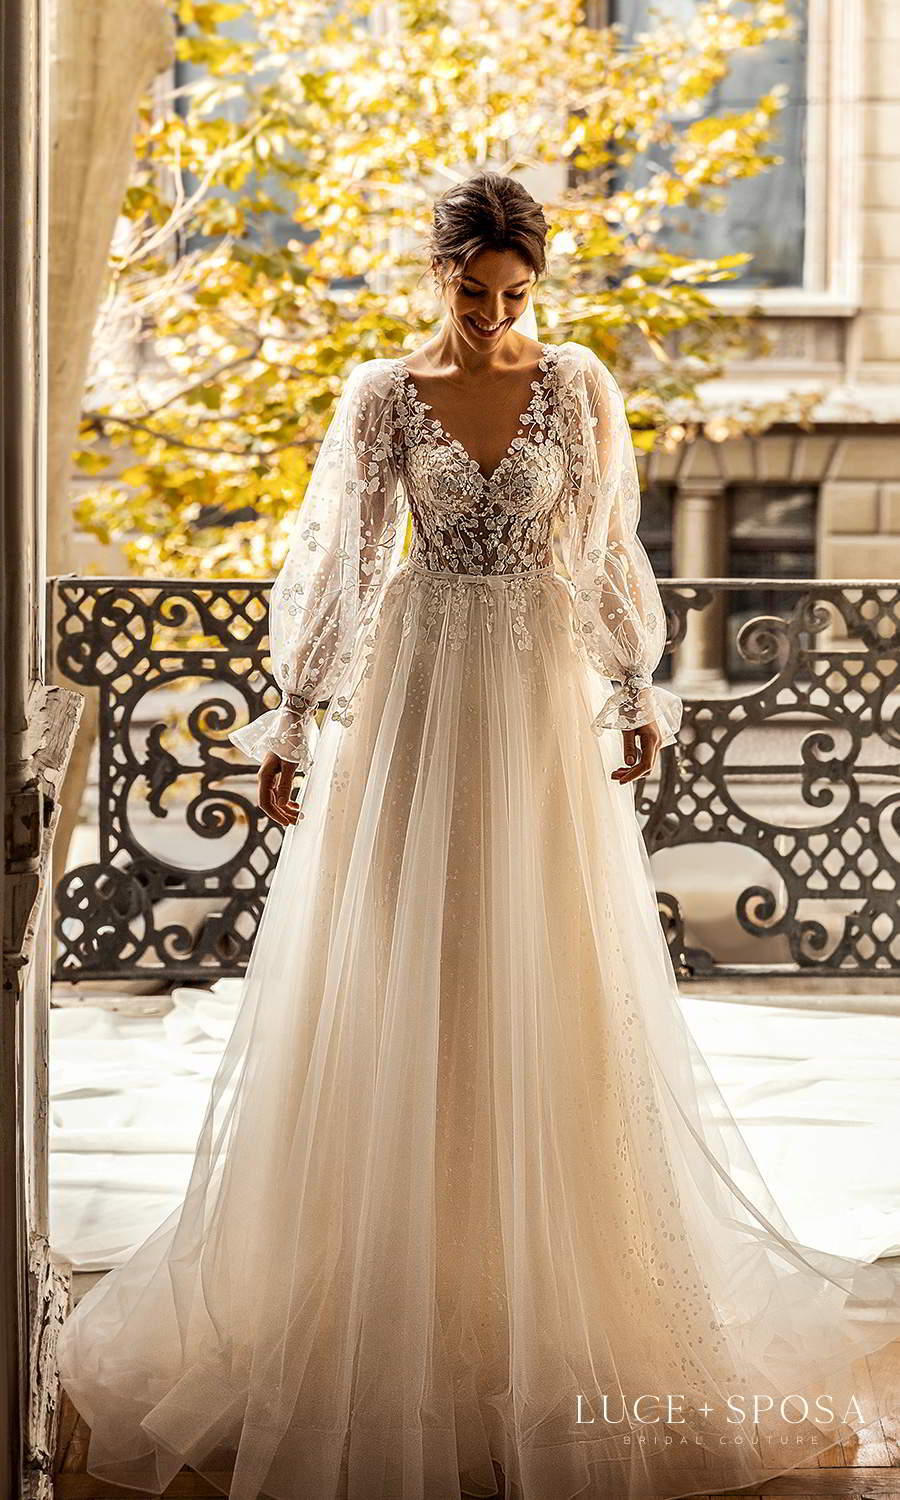 luce sposa 2021 shades of couture bridal sheer bishop sleeves v neckline fully embellished a line ball gown wedding dress boho chic chapel train (eden) mv